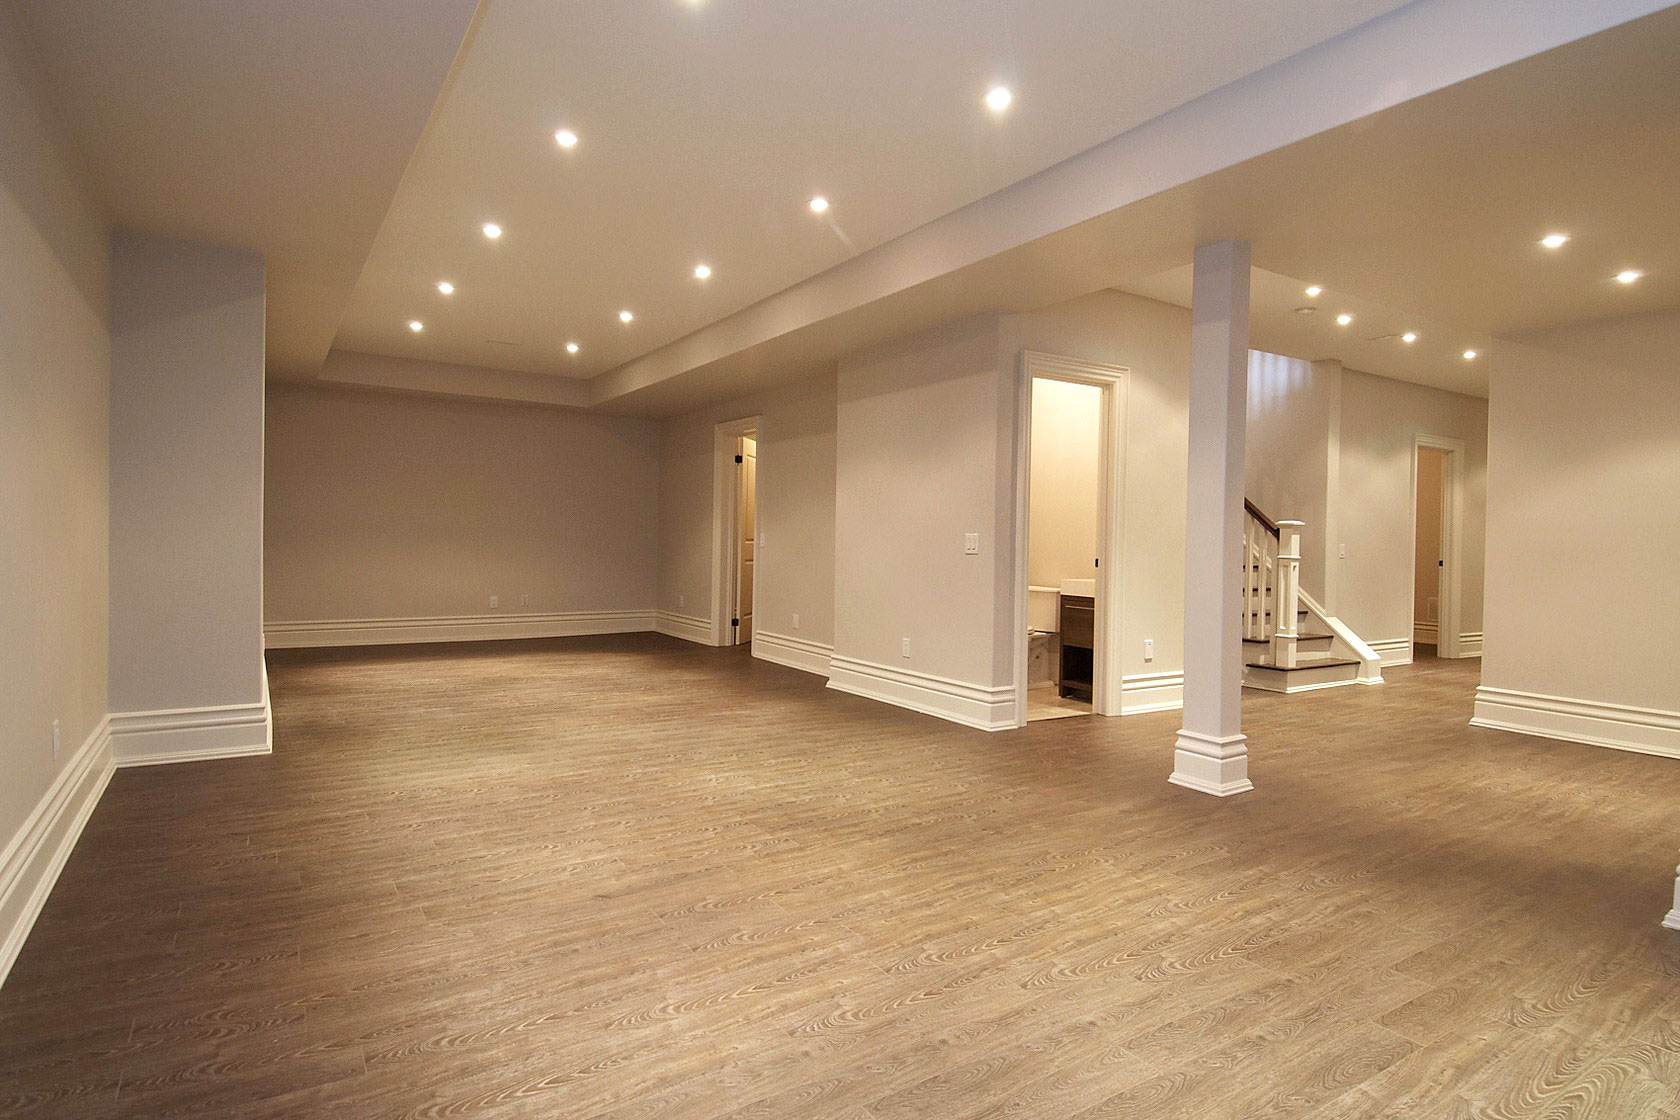 Basement renovations in toronto by the reno pros - Basement ideas for small spaces pict ...